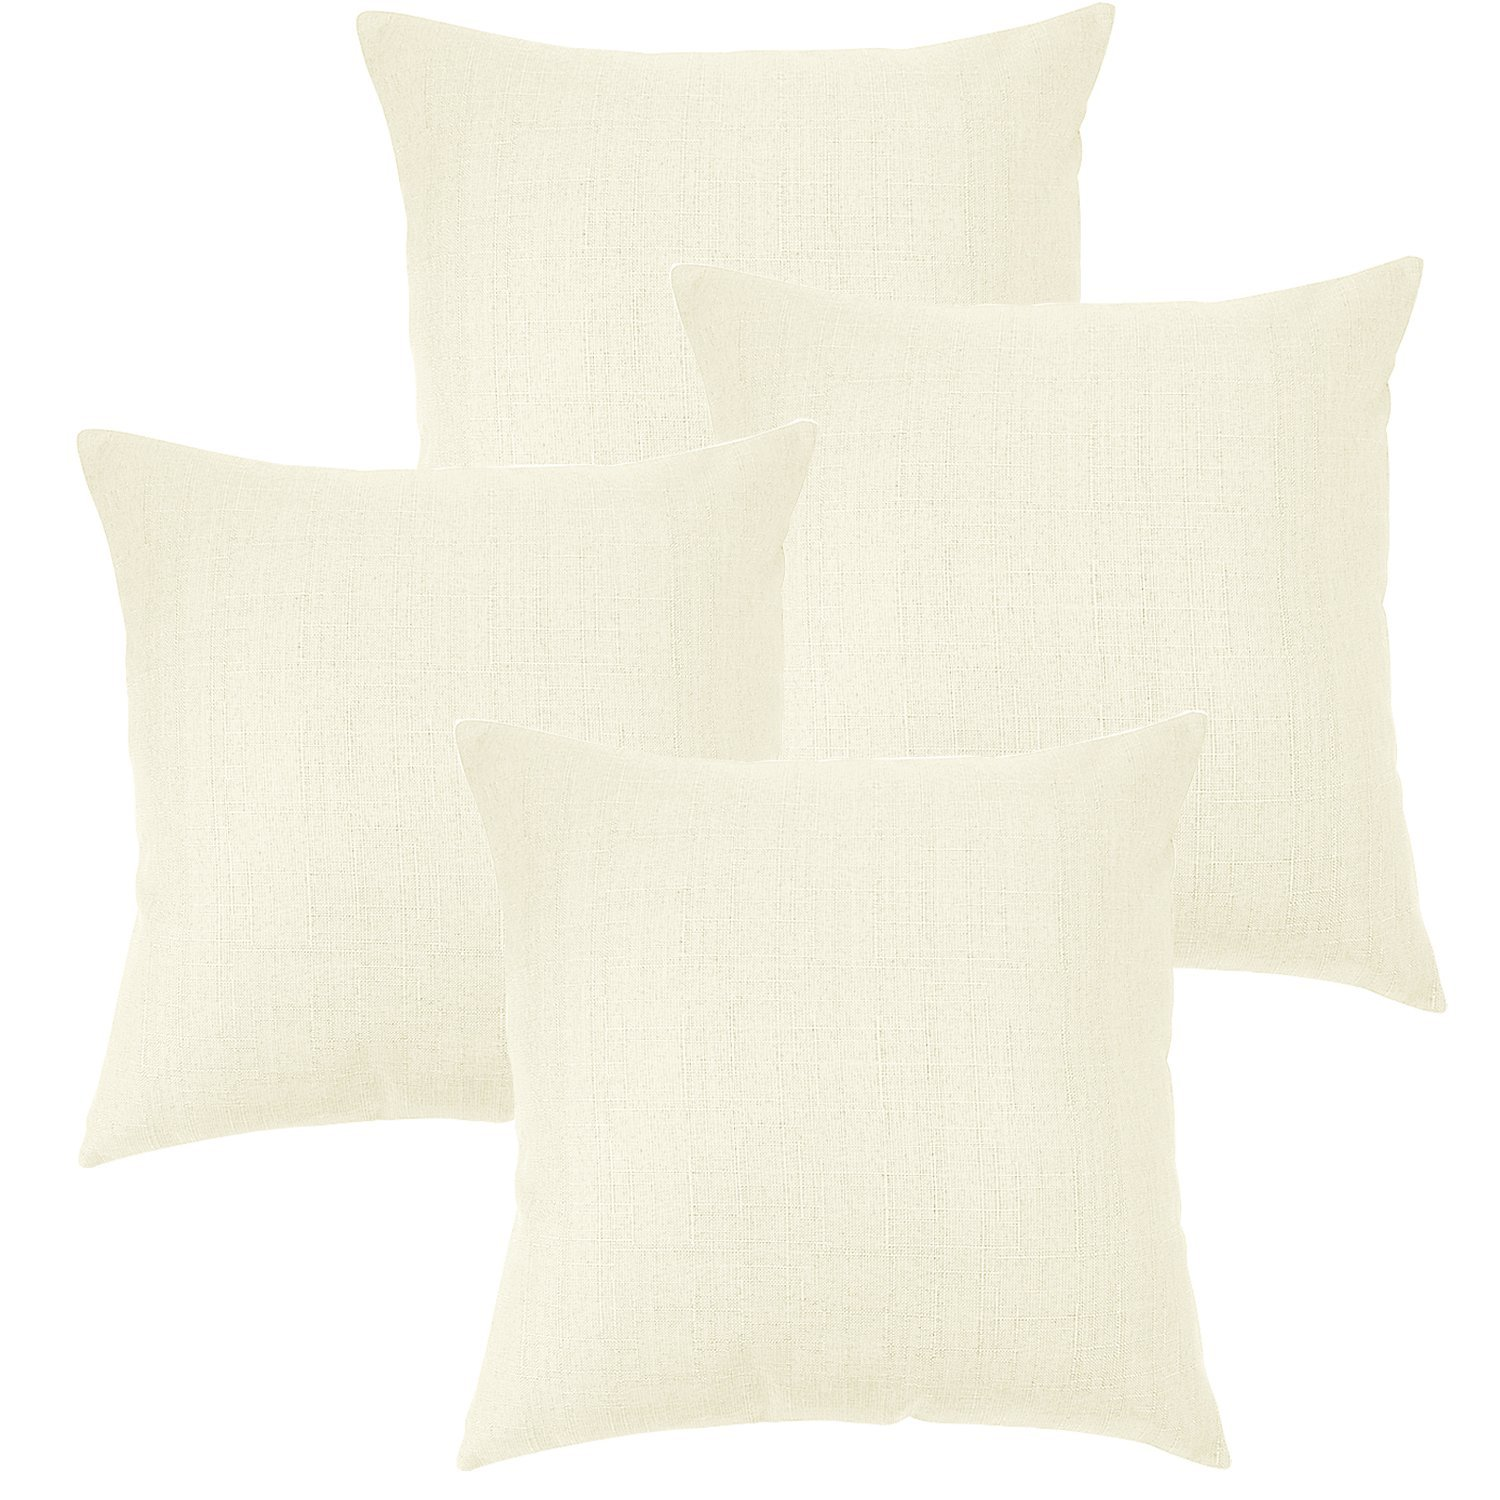 Linen Pillow Covers 20 X 20 Inch Sets Of 4 Decorative Square Throw